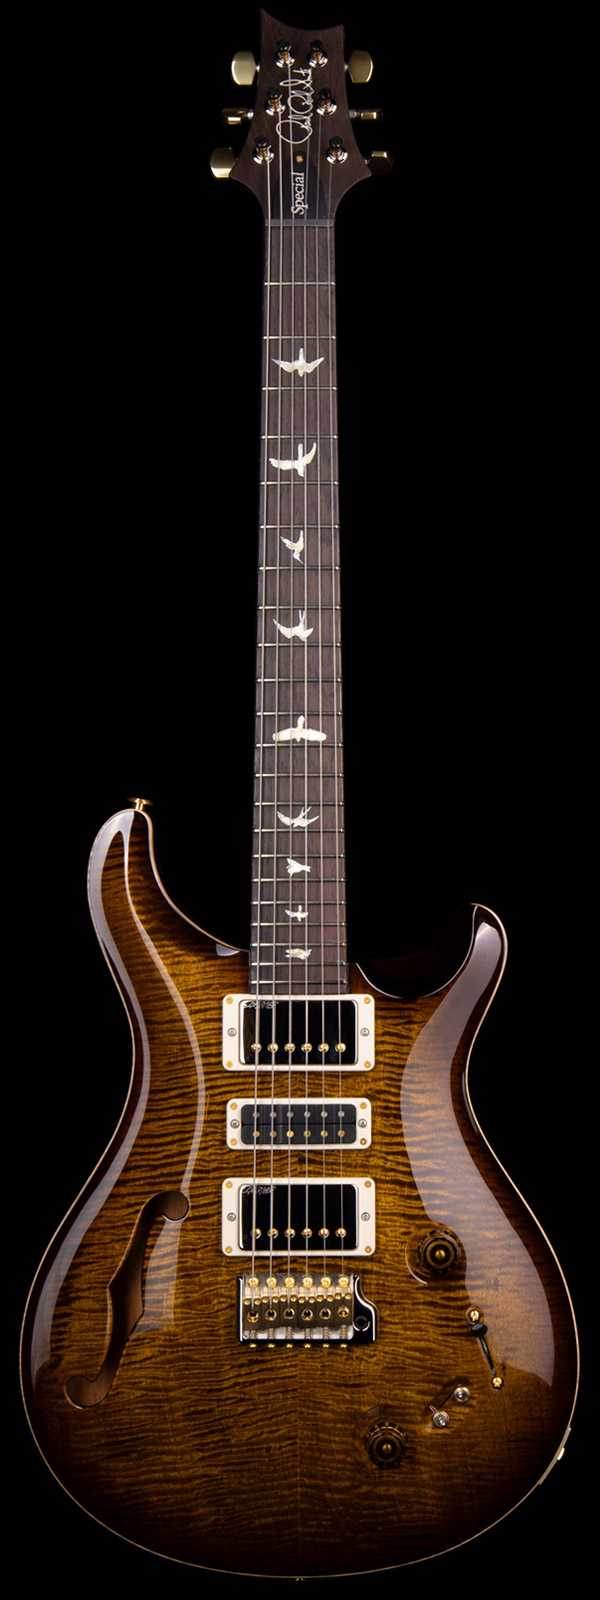 PRS Wood Library Special 22 Semi-Hollow w/Single F-hole 10 Top Brazilian Fretboard Black Gold